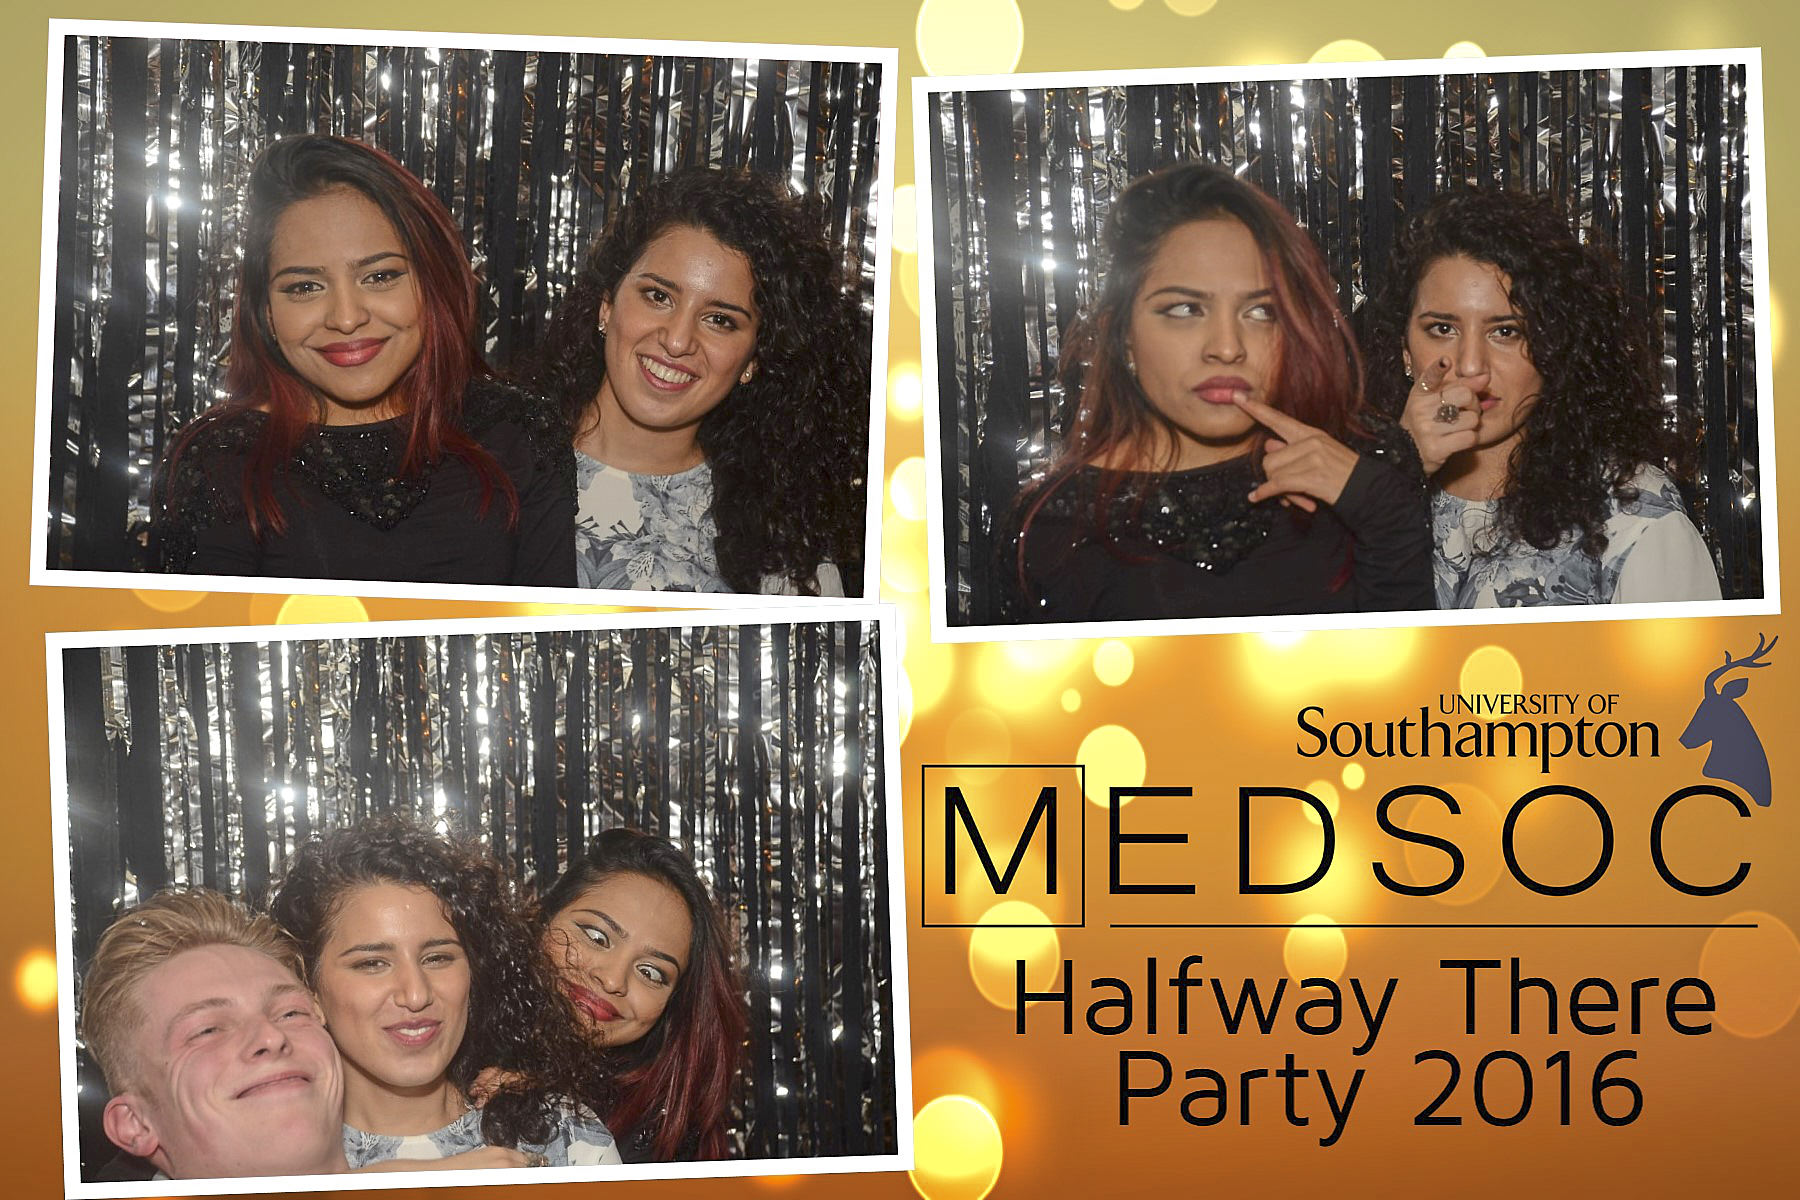 MedSoc Halfway There Party 2016 DS234301.jpg